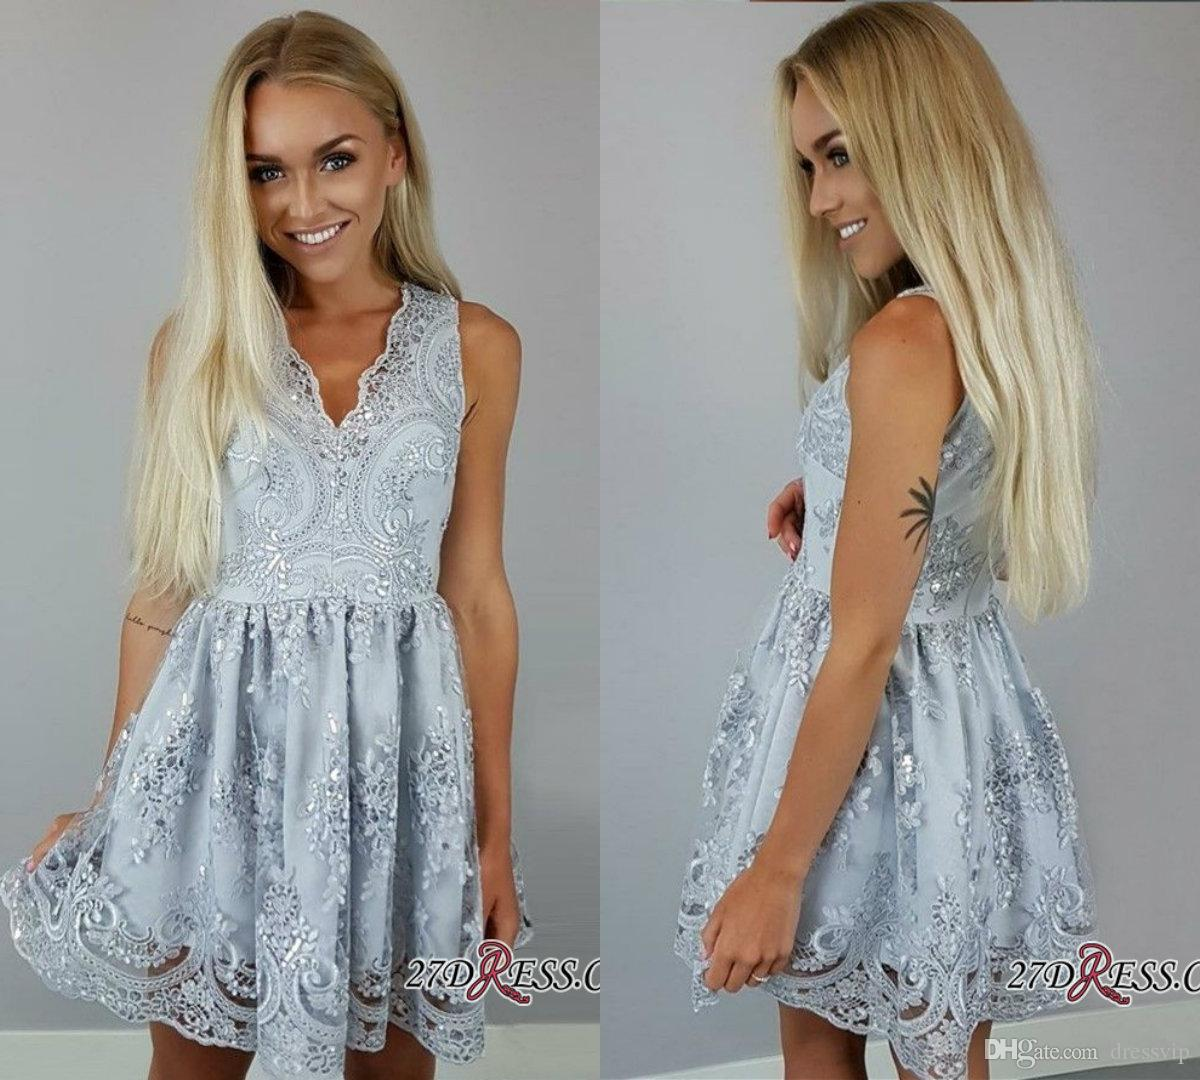 e457e68074a 2019 Homecoming Dresses V Neck Lace Appliques A Line Cheap Cocktail Dress  Sleeveless Girls Short Prom Dress Party Wear Sequin Dresses Cheap Sexy  Classy ...